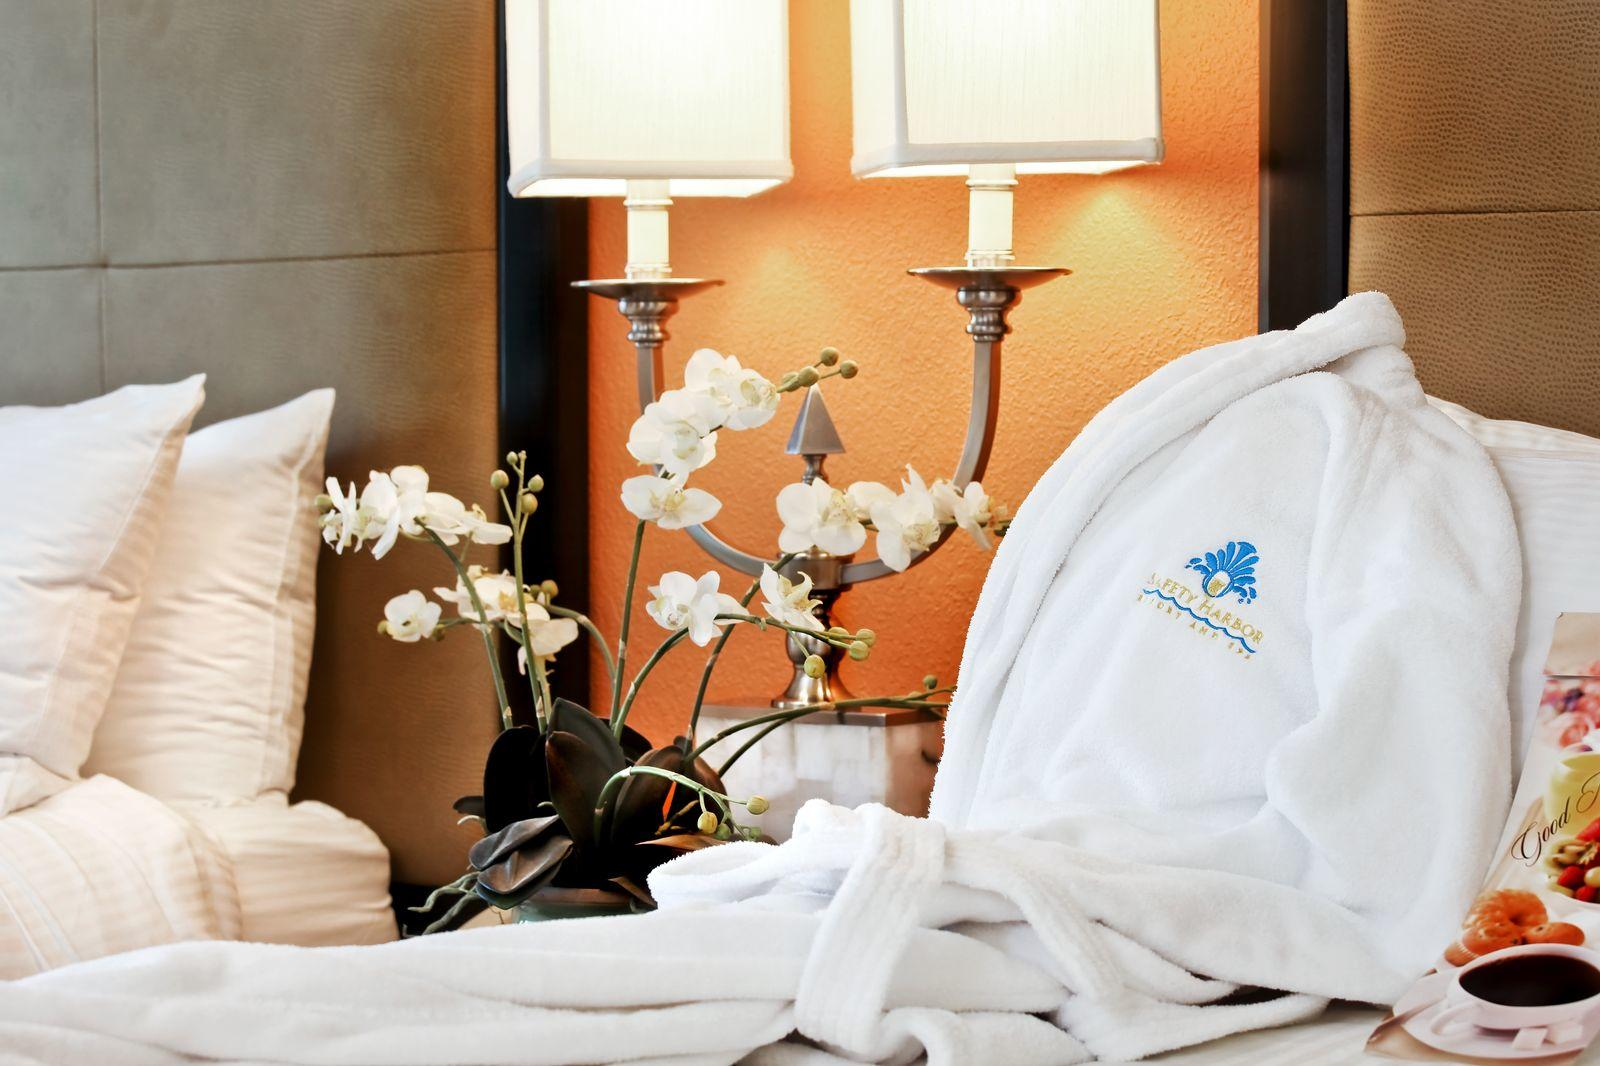 Hotel room with white bathrobe and flowers.